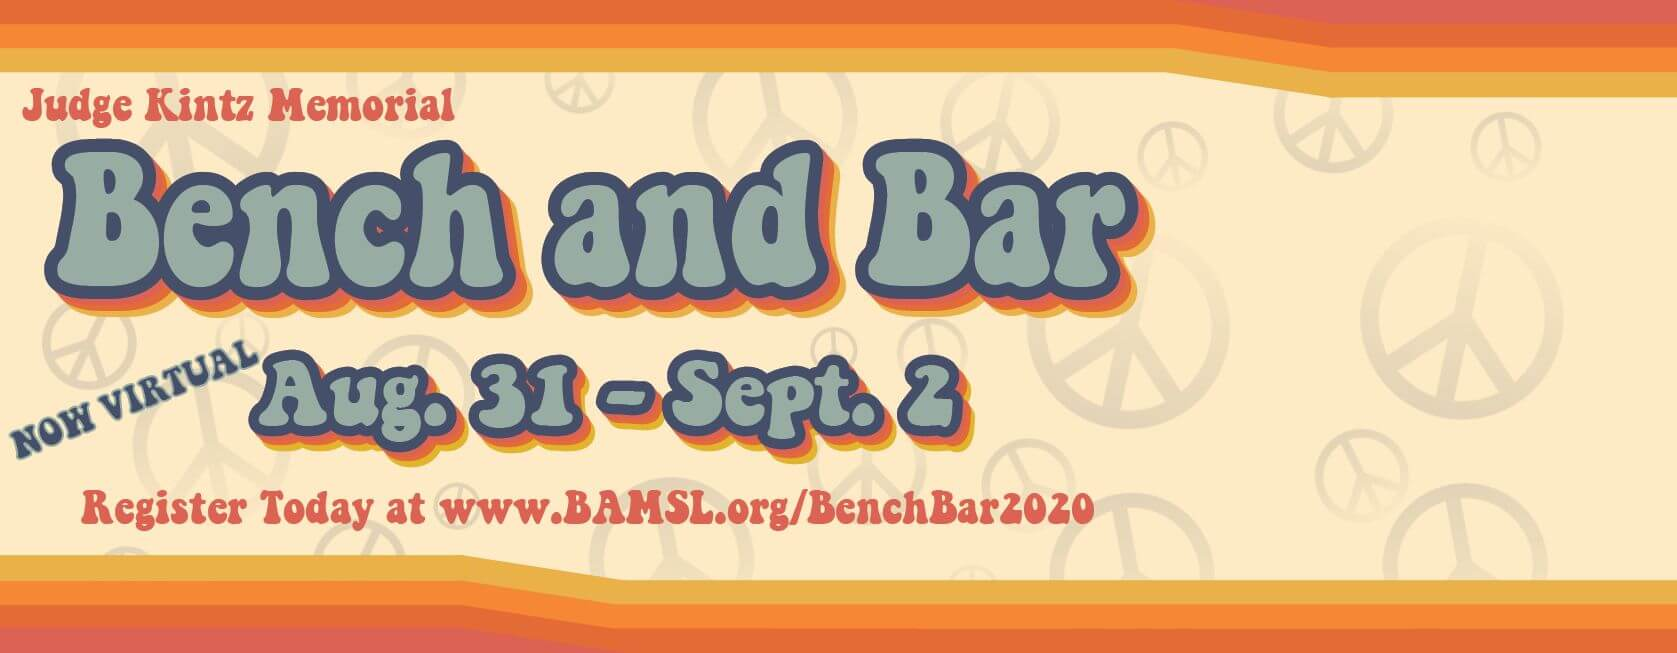 2020 Bench and Bar Conference is August 31 through September 2